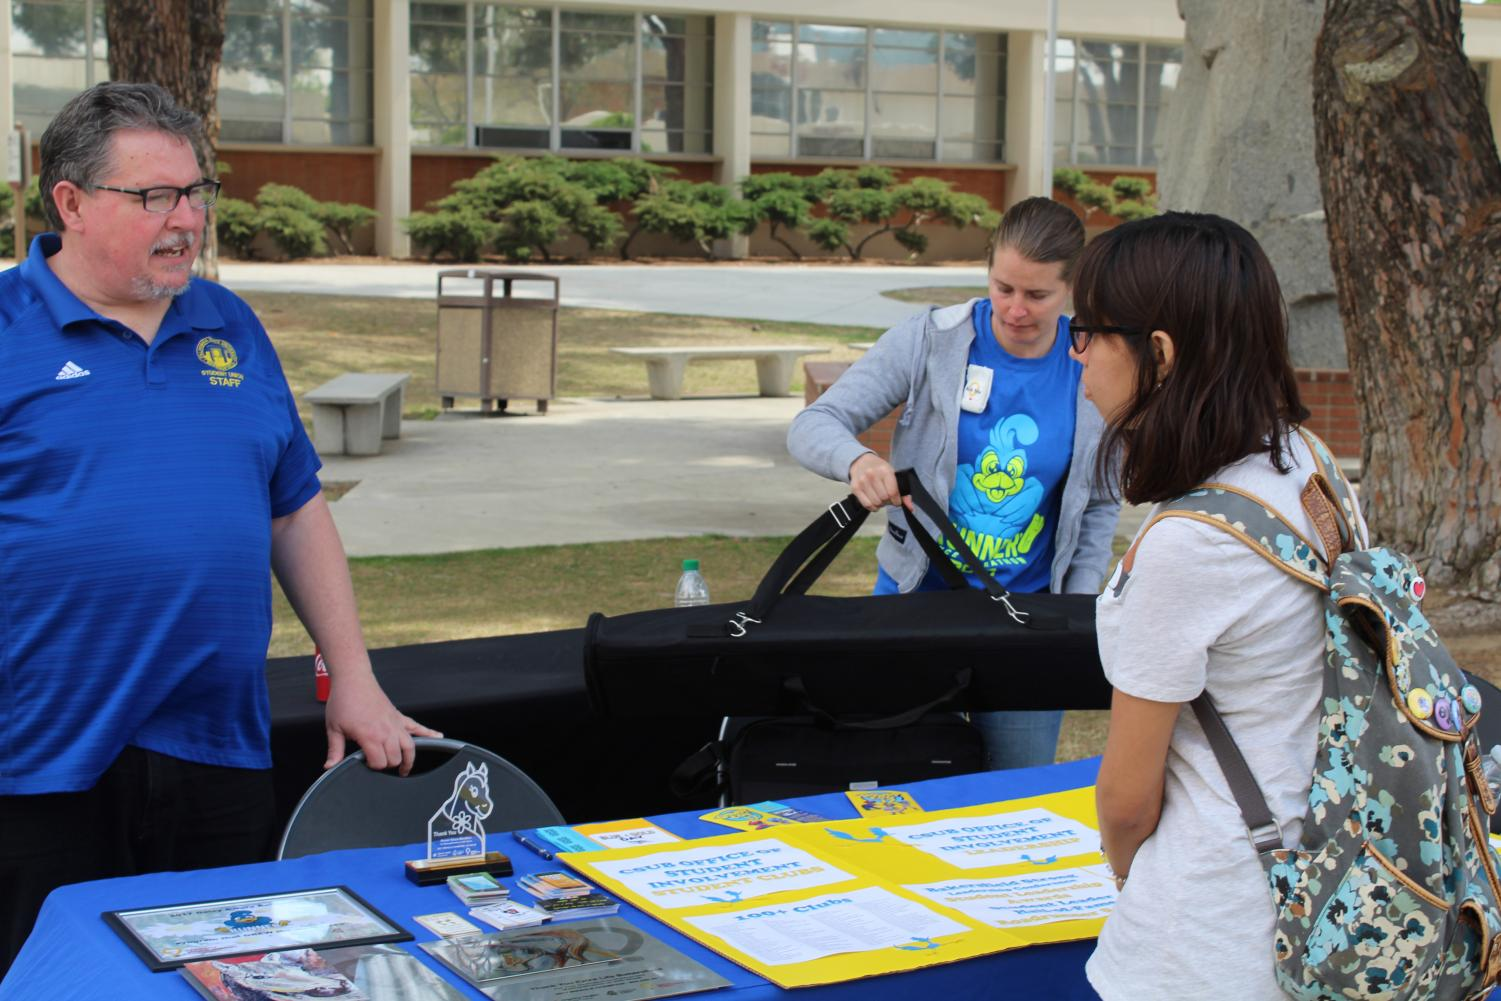 Ed Webb talks to a student about clubs at CSUB.